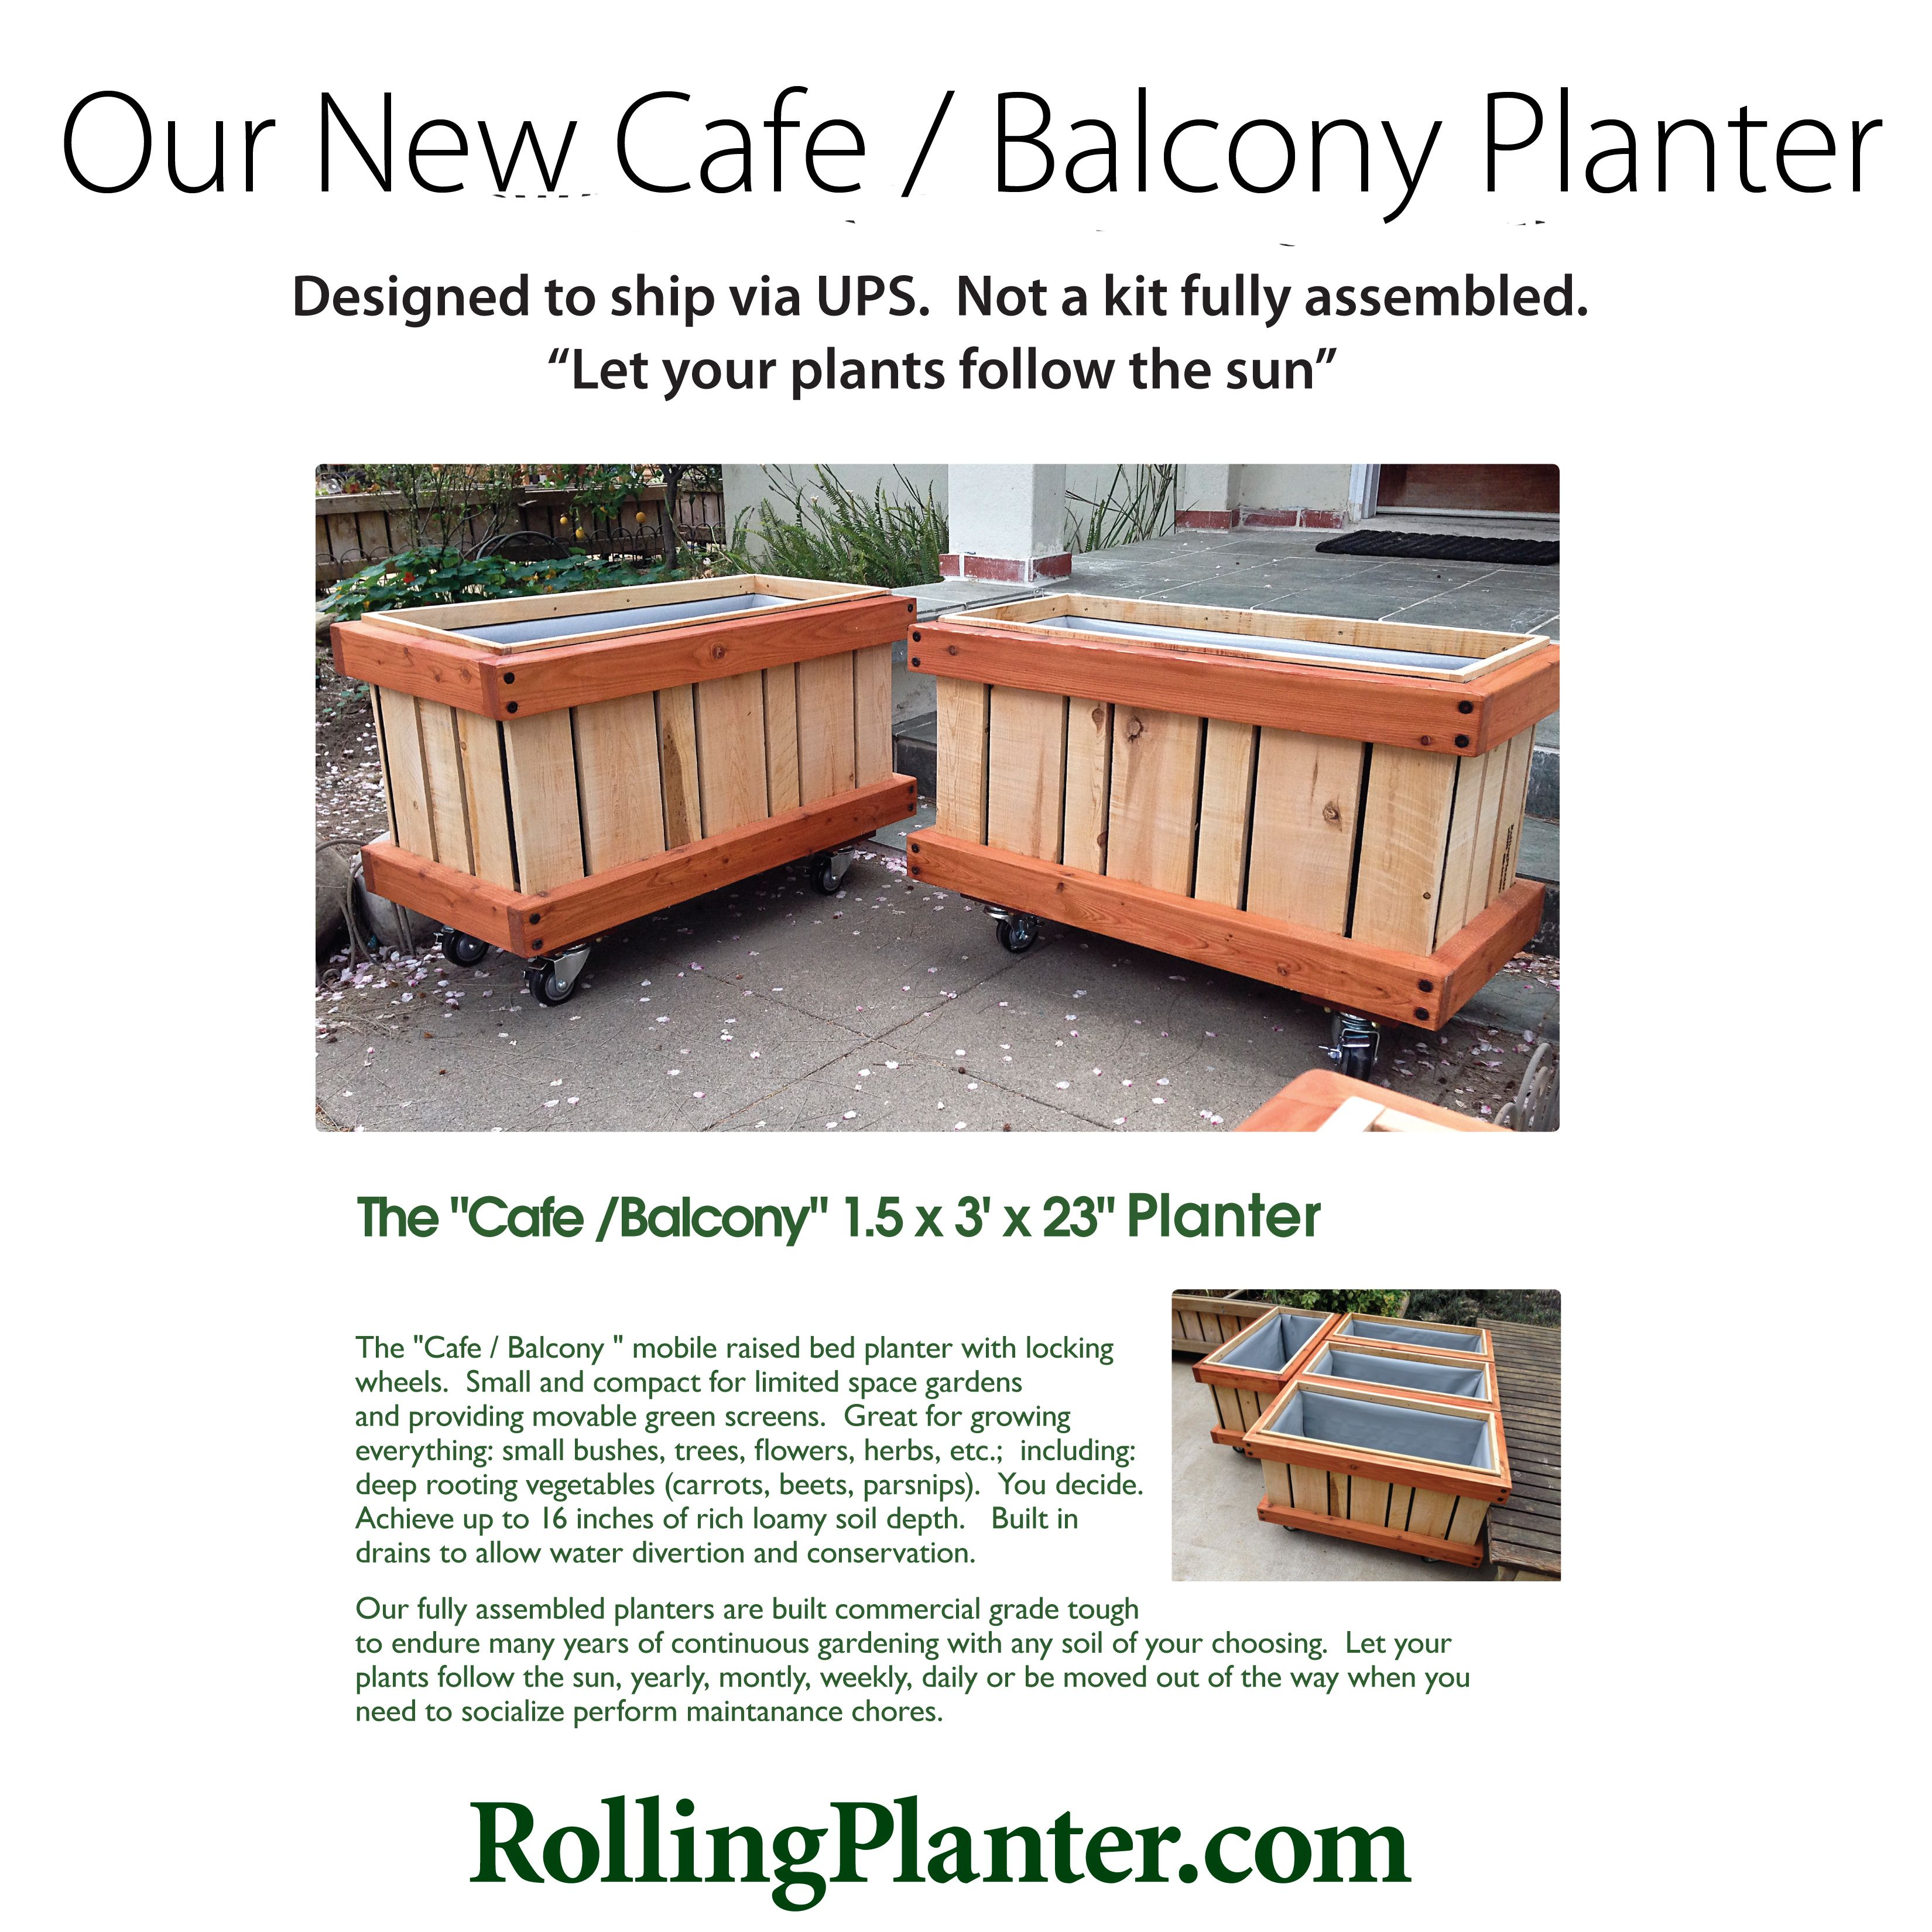 M Cafe 4 Sizes Commercial Quality Rolling Planter Stable And Able To Move Over Heavy Door Jambs Designed For Small Intima Raised Planter Beds